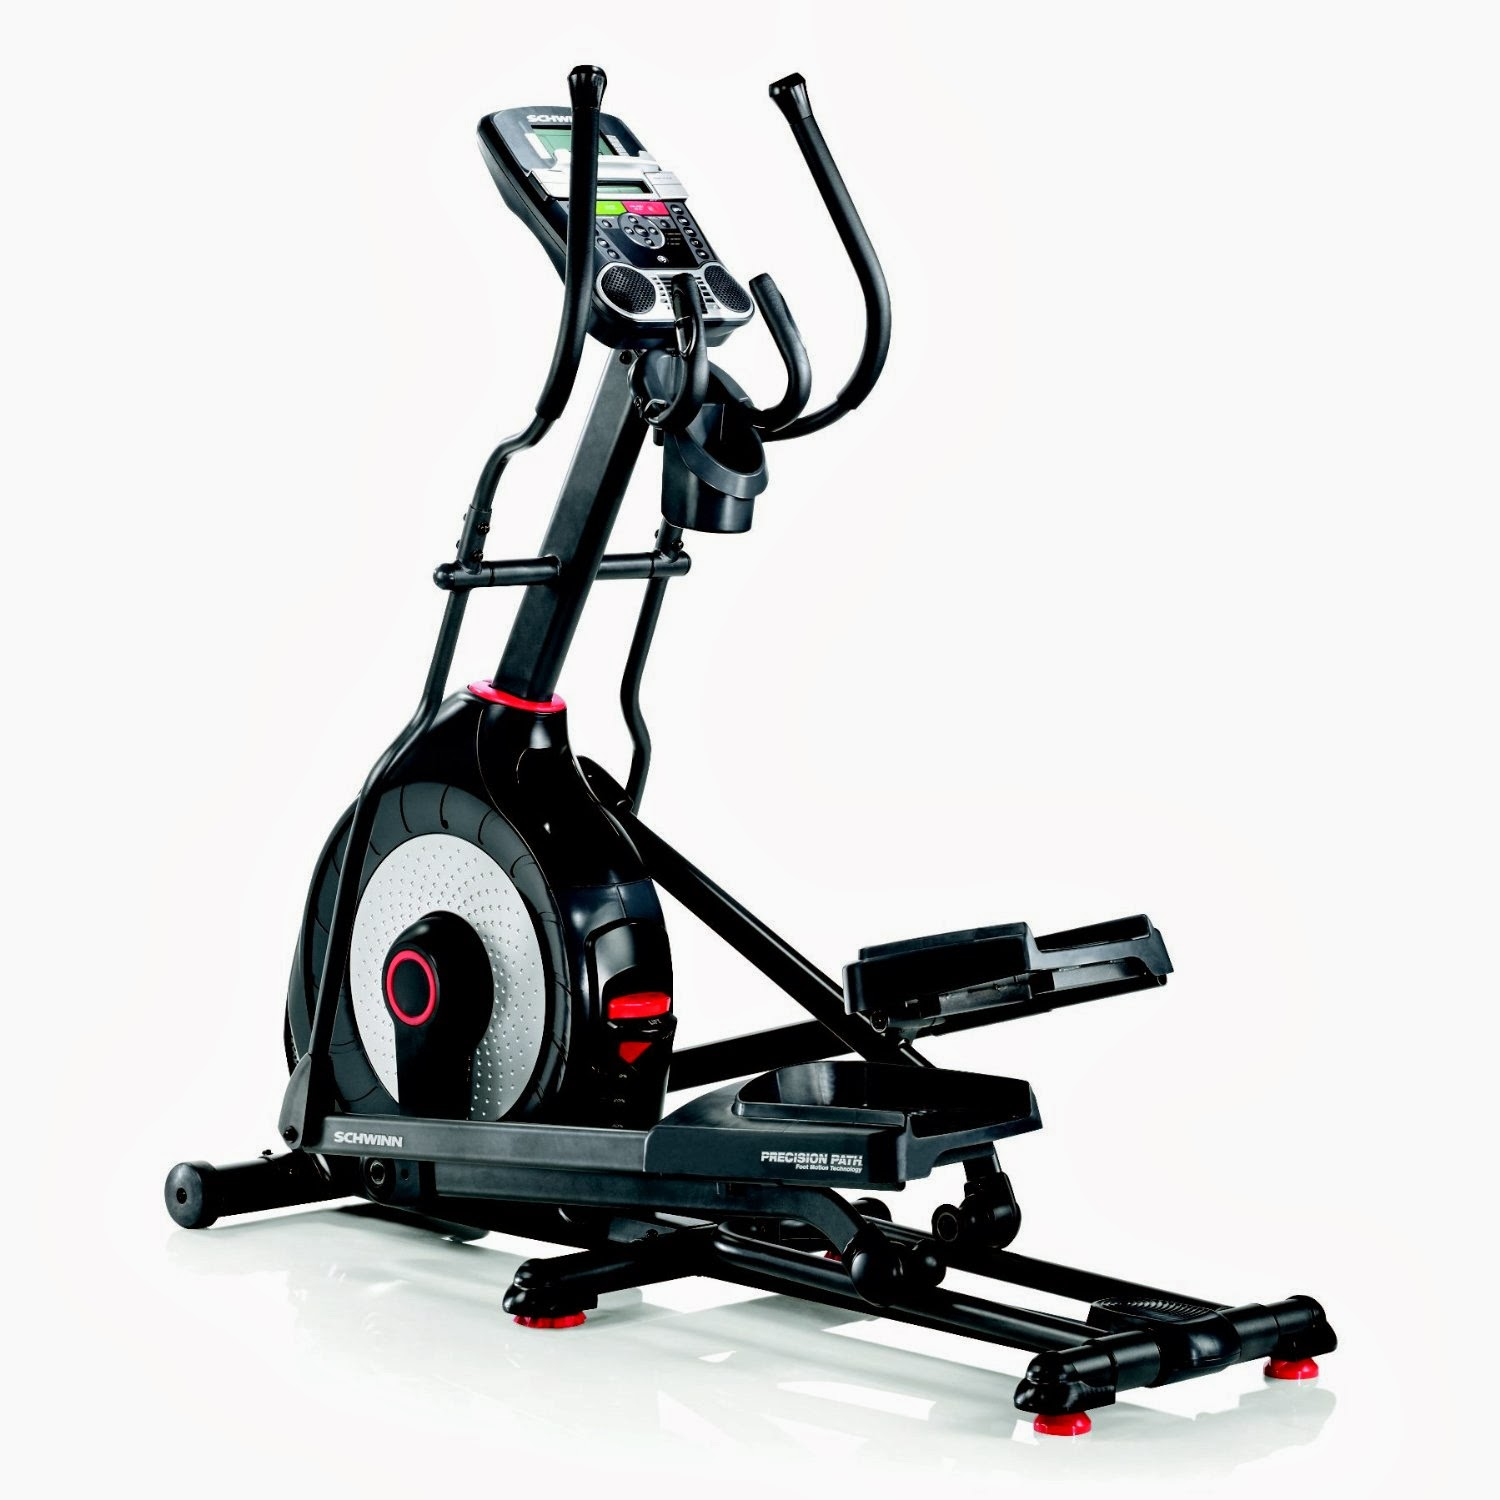 Schwinn 430 Elliptical Trainer Machine, picture, review features & specifications, compare with Schwinn 470